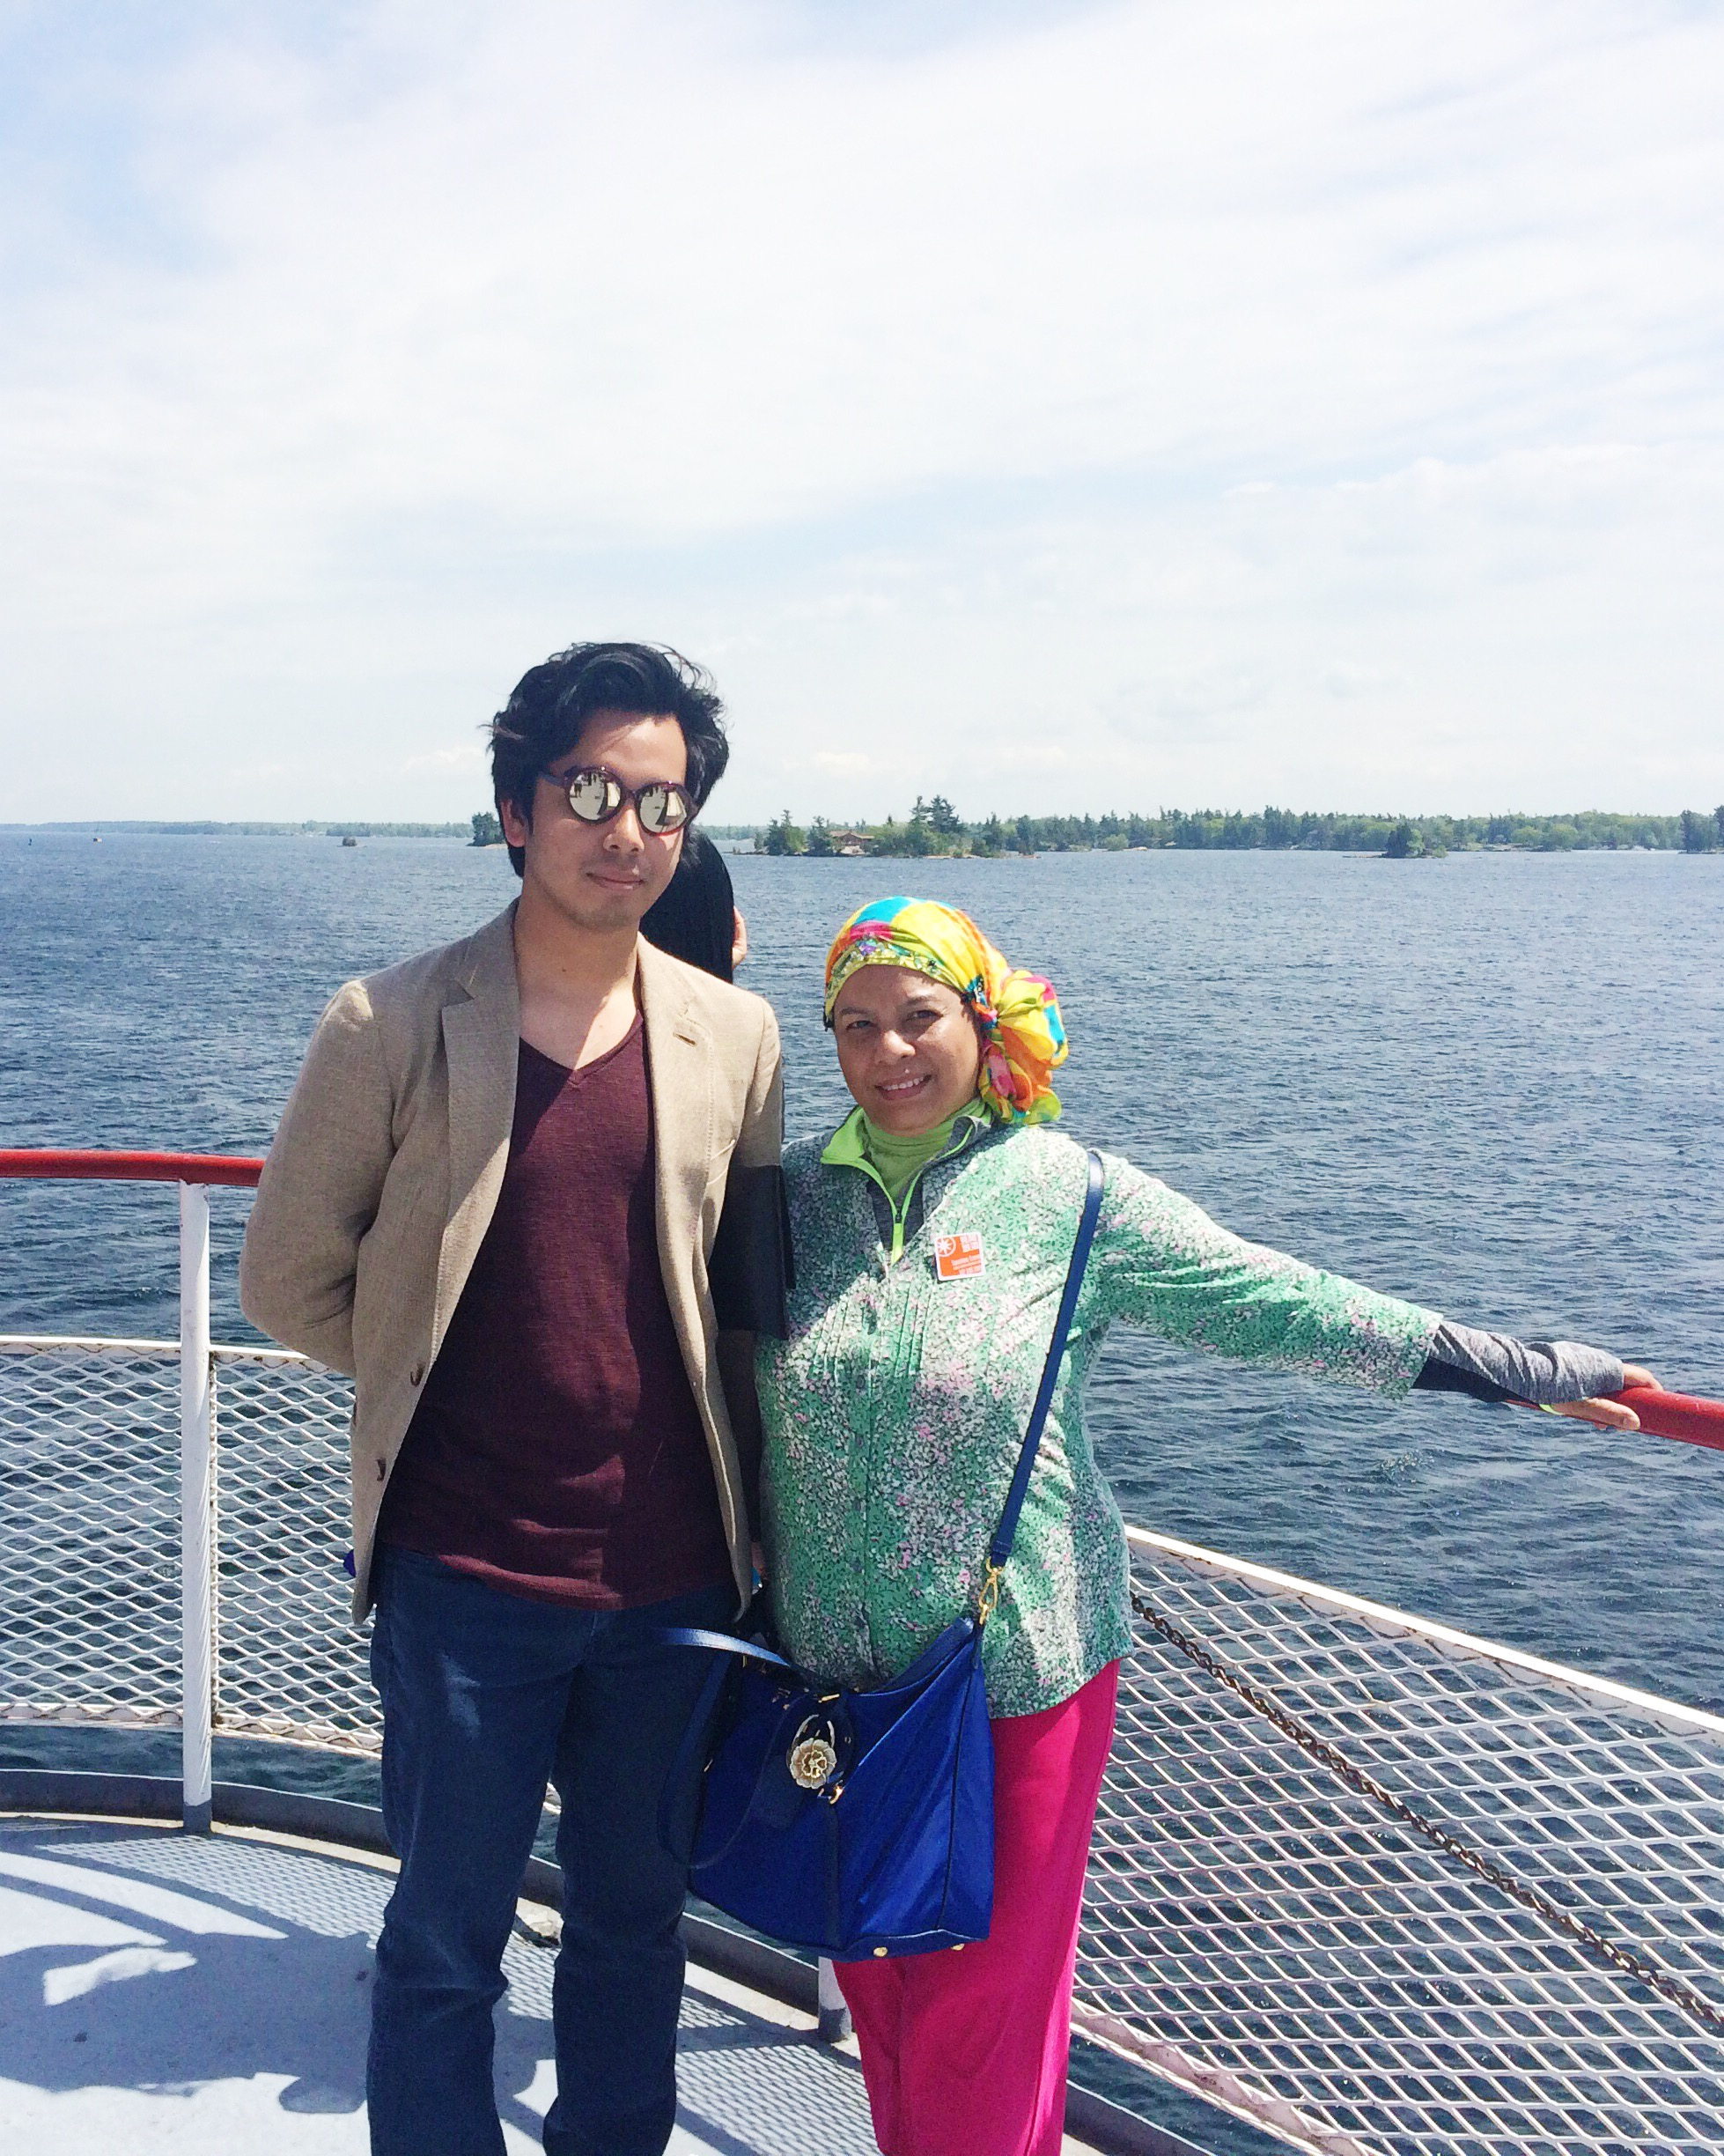 At The Front Of The Ship, My Mother and I